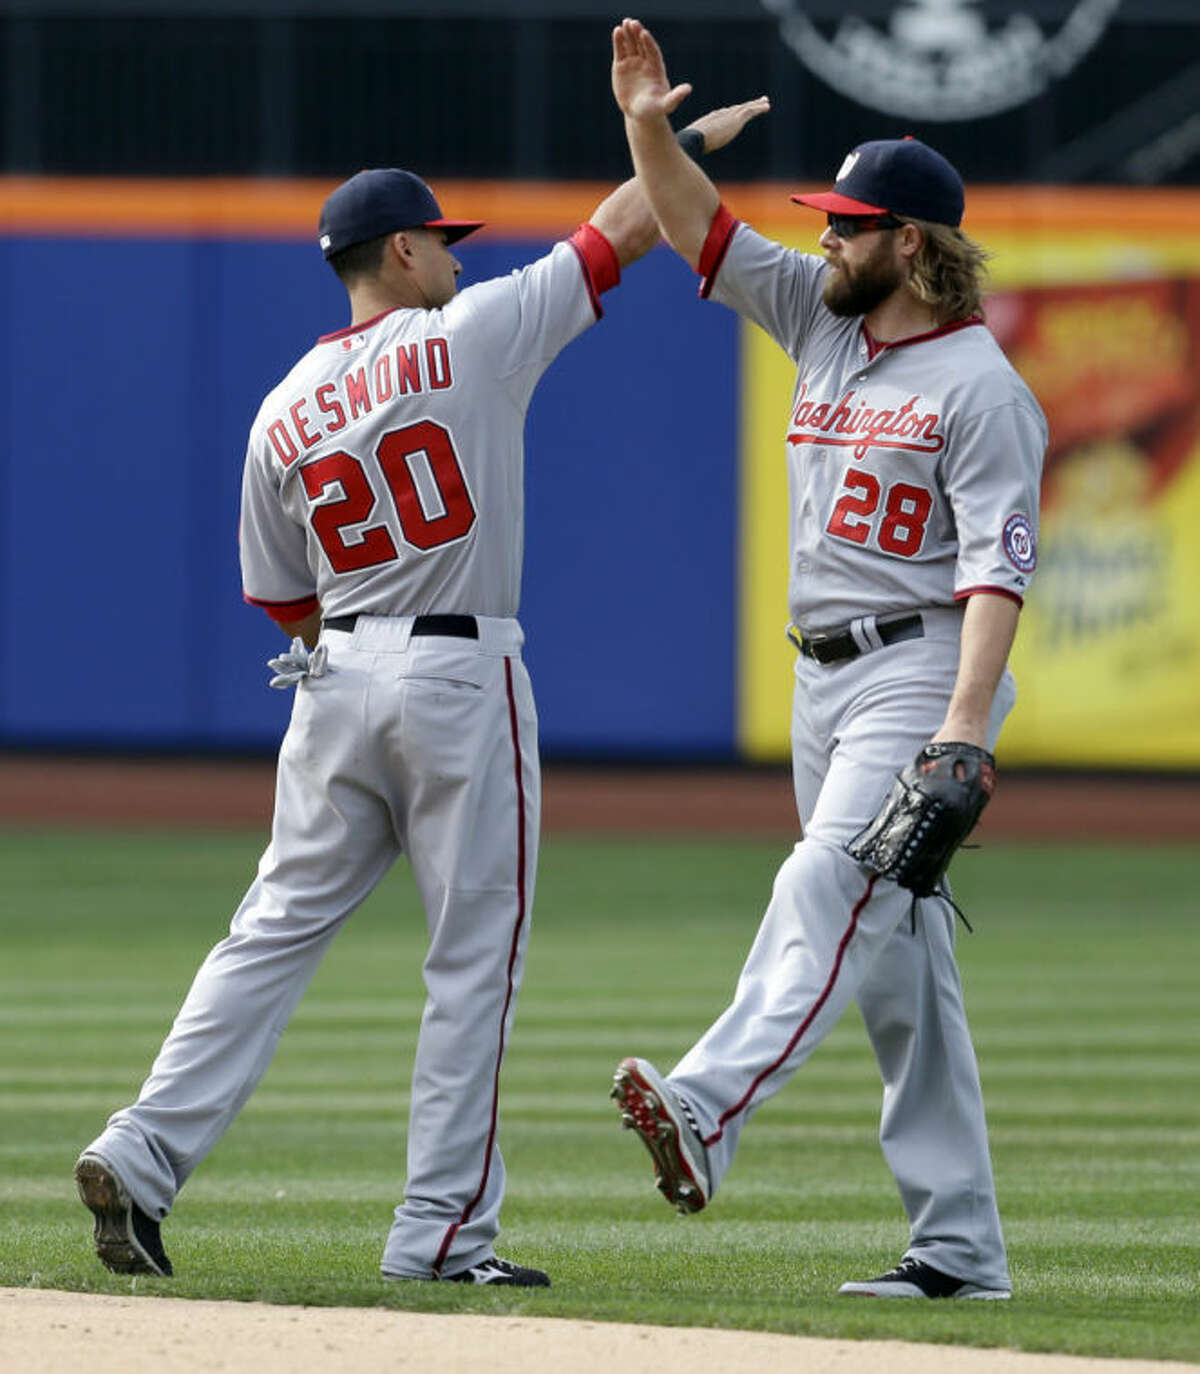 Washington Nationals' Jayson Werth, right, and Ian Desmond celebrate after the baseball game against the New York Mets at Citi Field, Thursday, April 3, 2014, in New York. The Nationals won 8-2. (AP Photo/Seth Wenig)